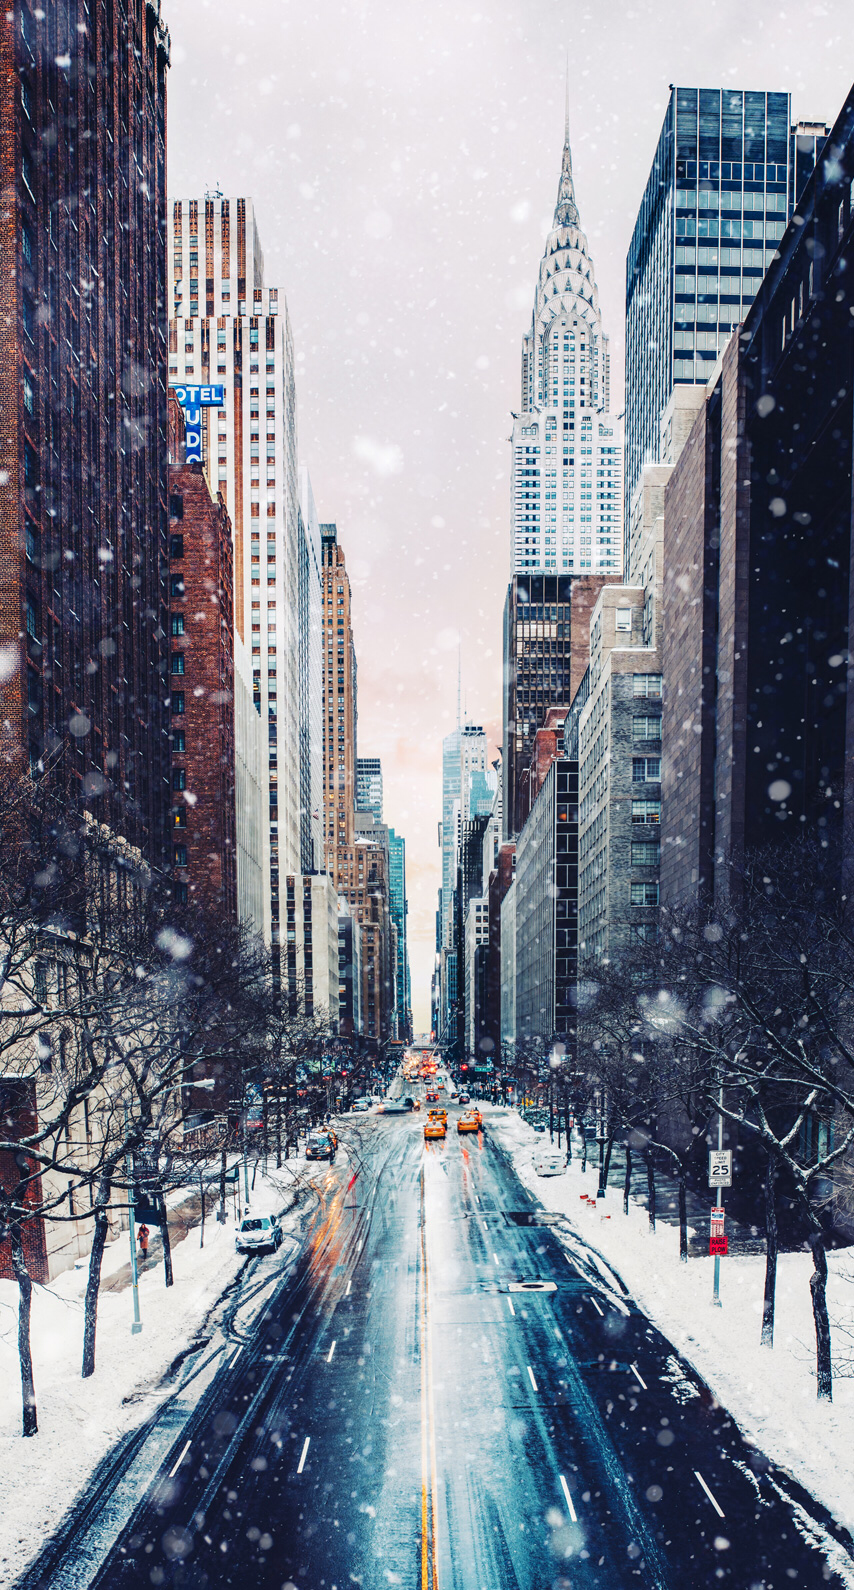 As December Draws Near New York City Transforms Into Joyous Holiday Spirit Throughout The Five Boroughs New York Christmas Nyc Christmas Christmas Wallpaper